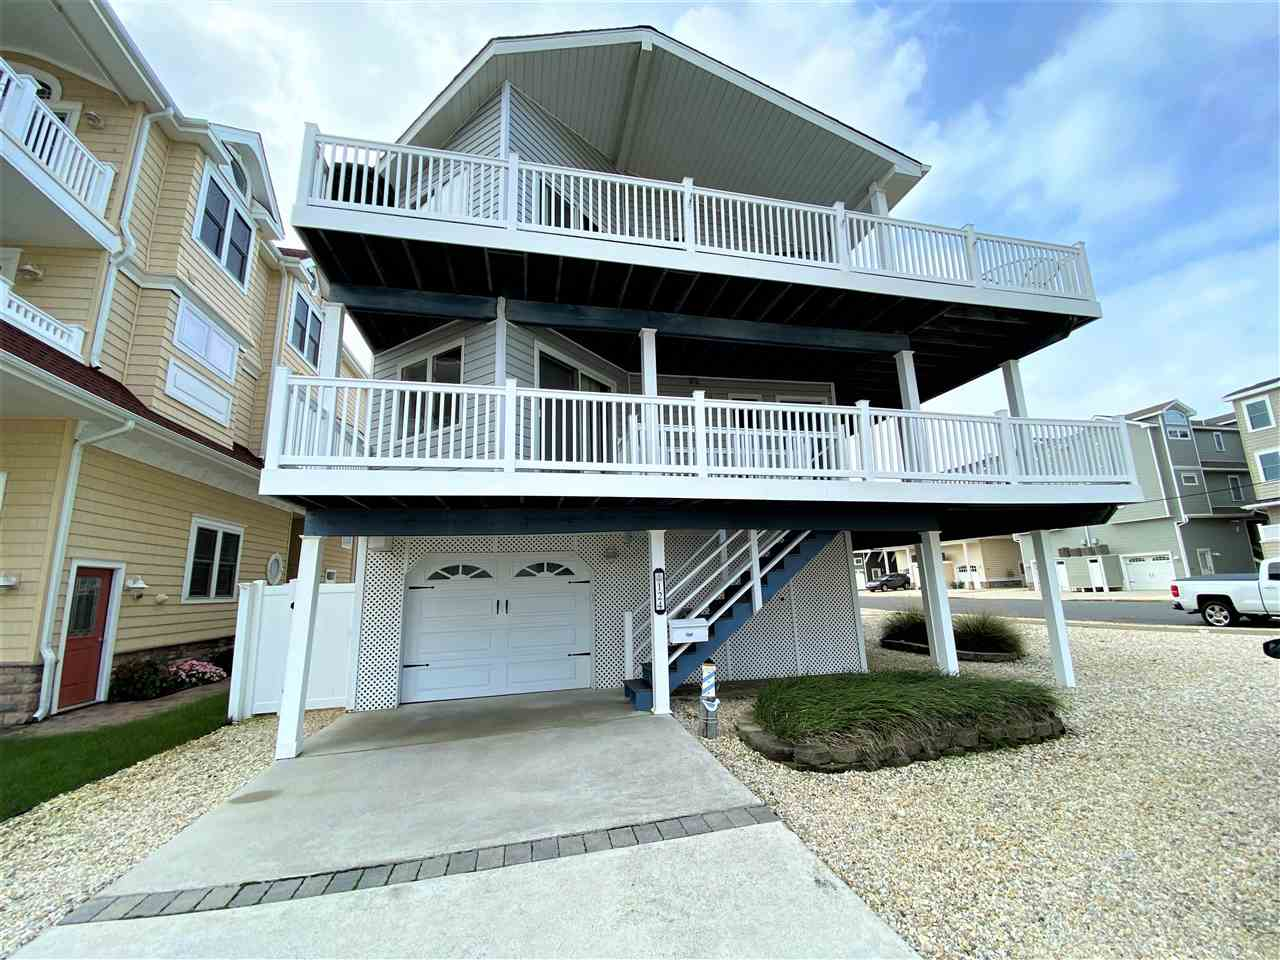 124 N 60th Street - Sea Isle City